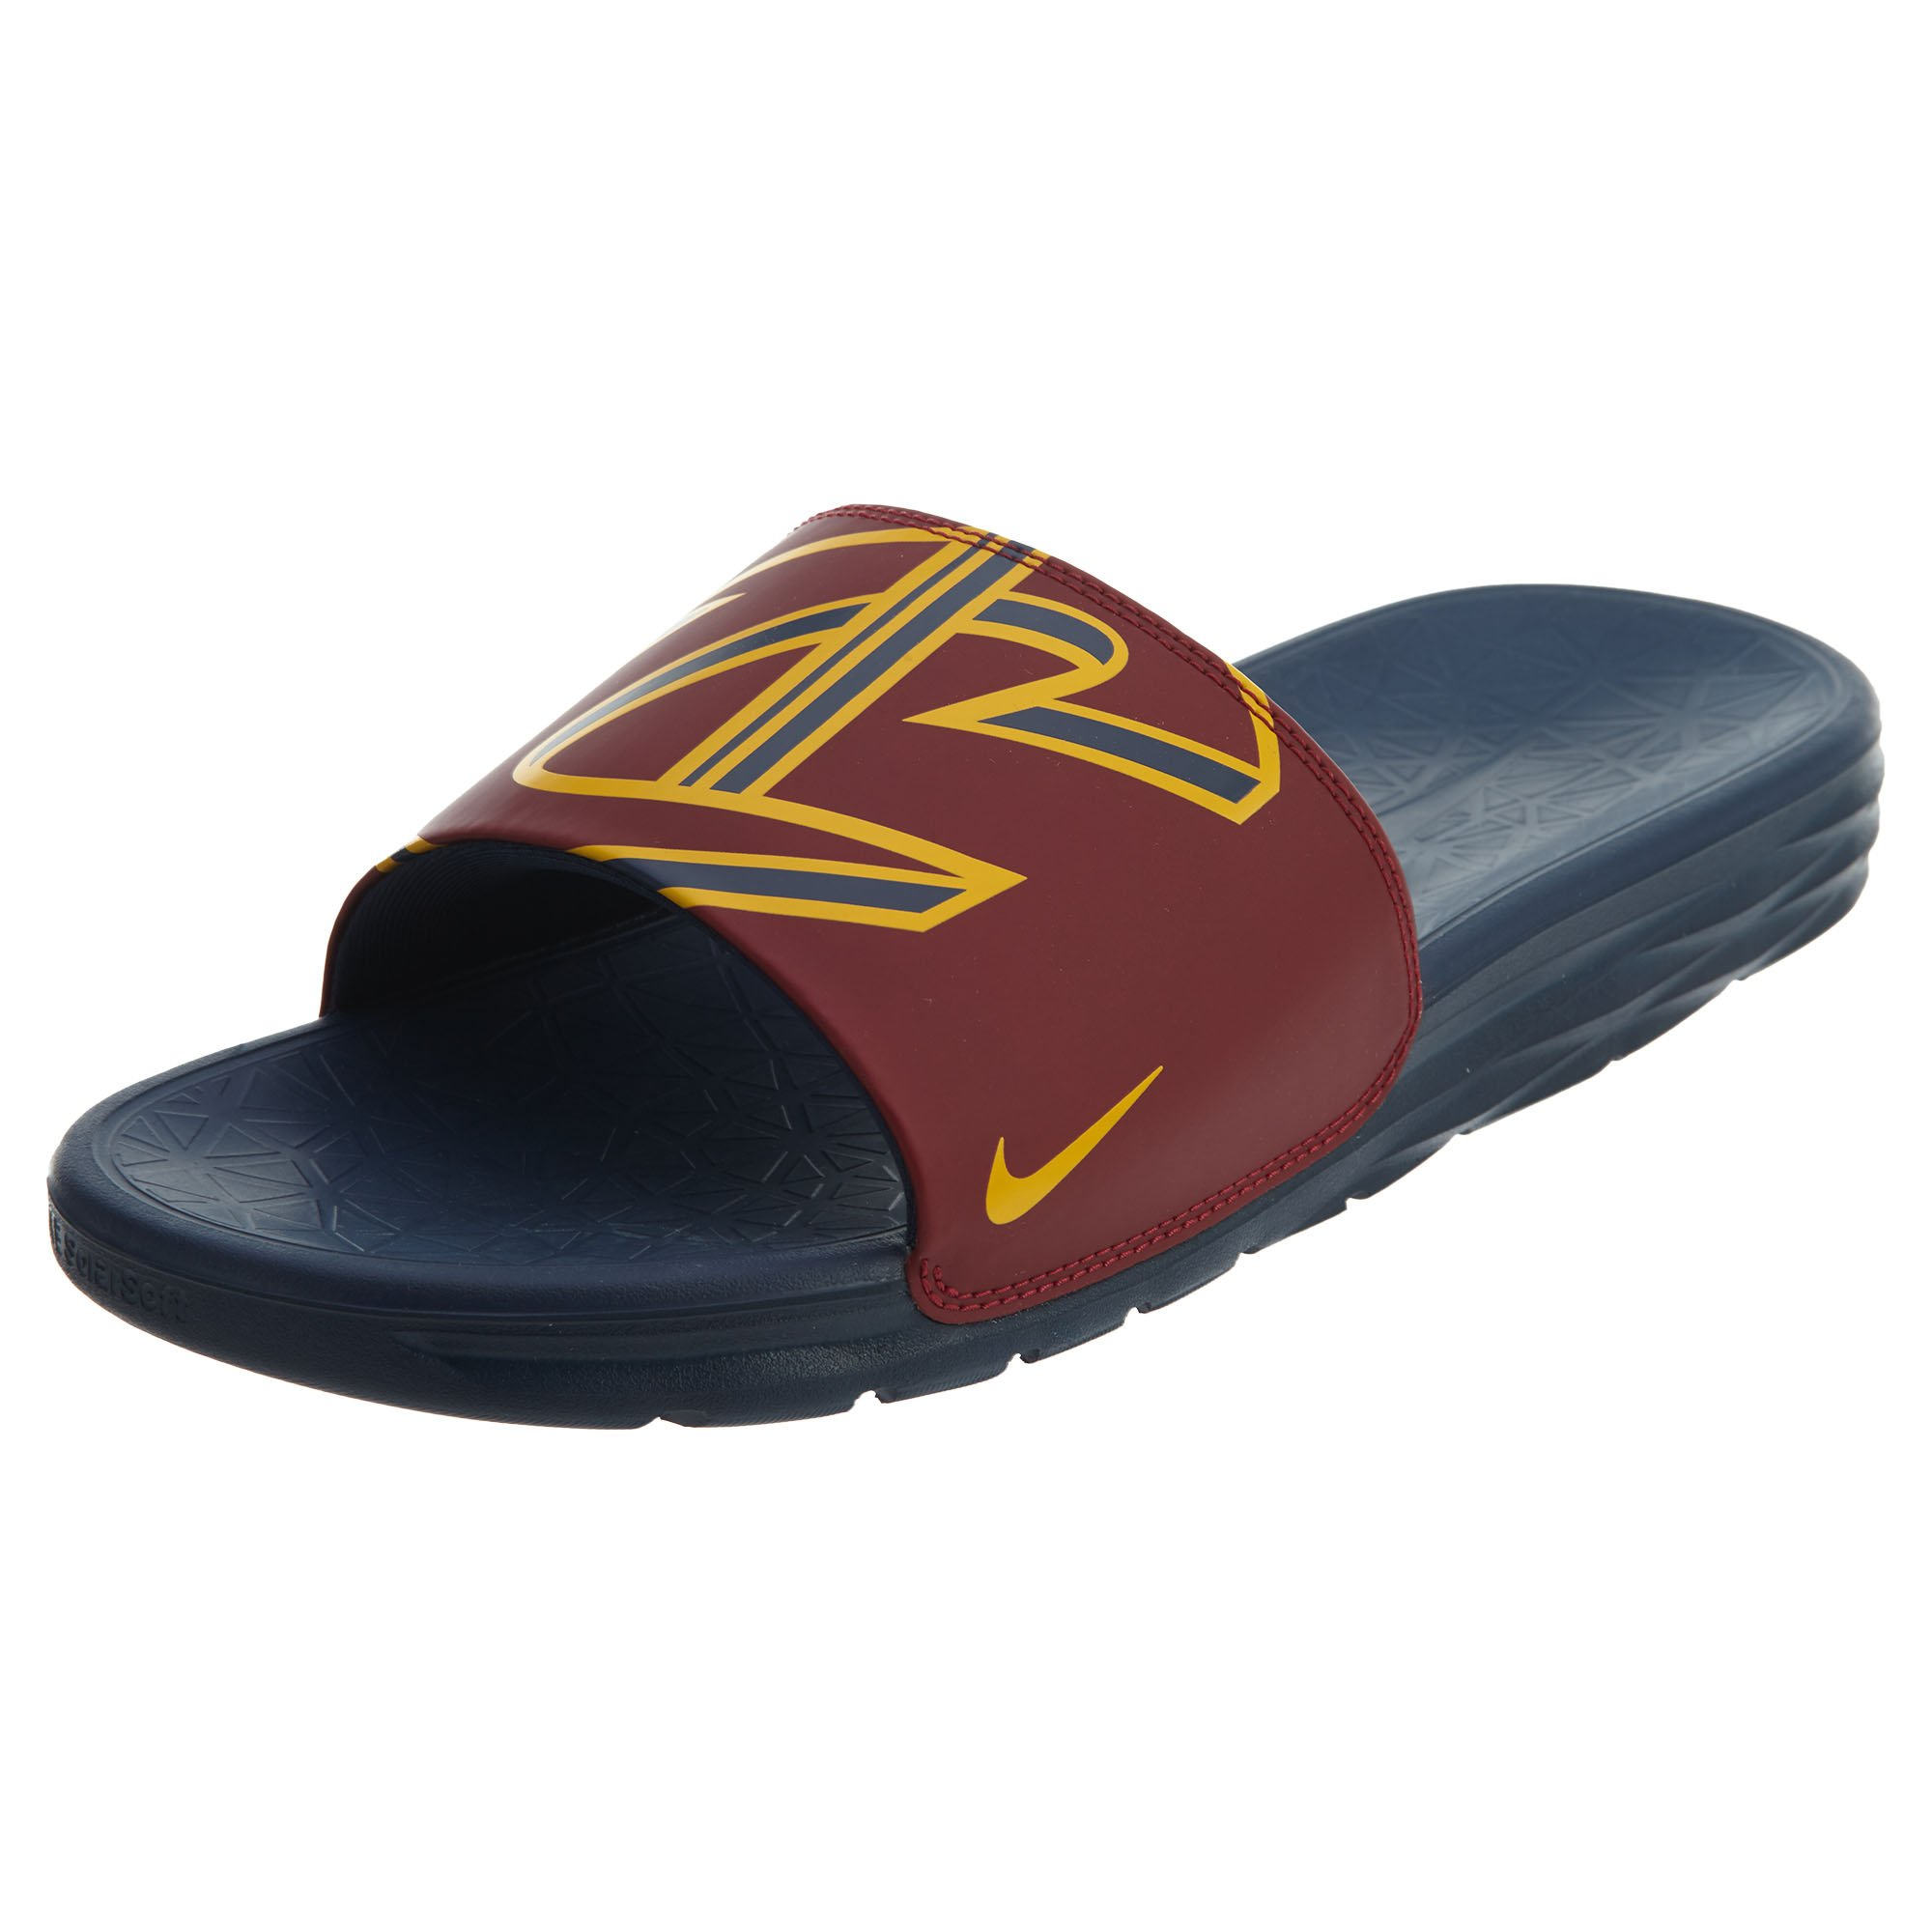 89ba025ede95 Galleon - NIKE Men s Benassi Solarsoft NBA